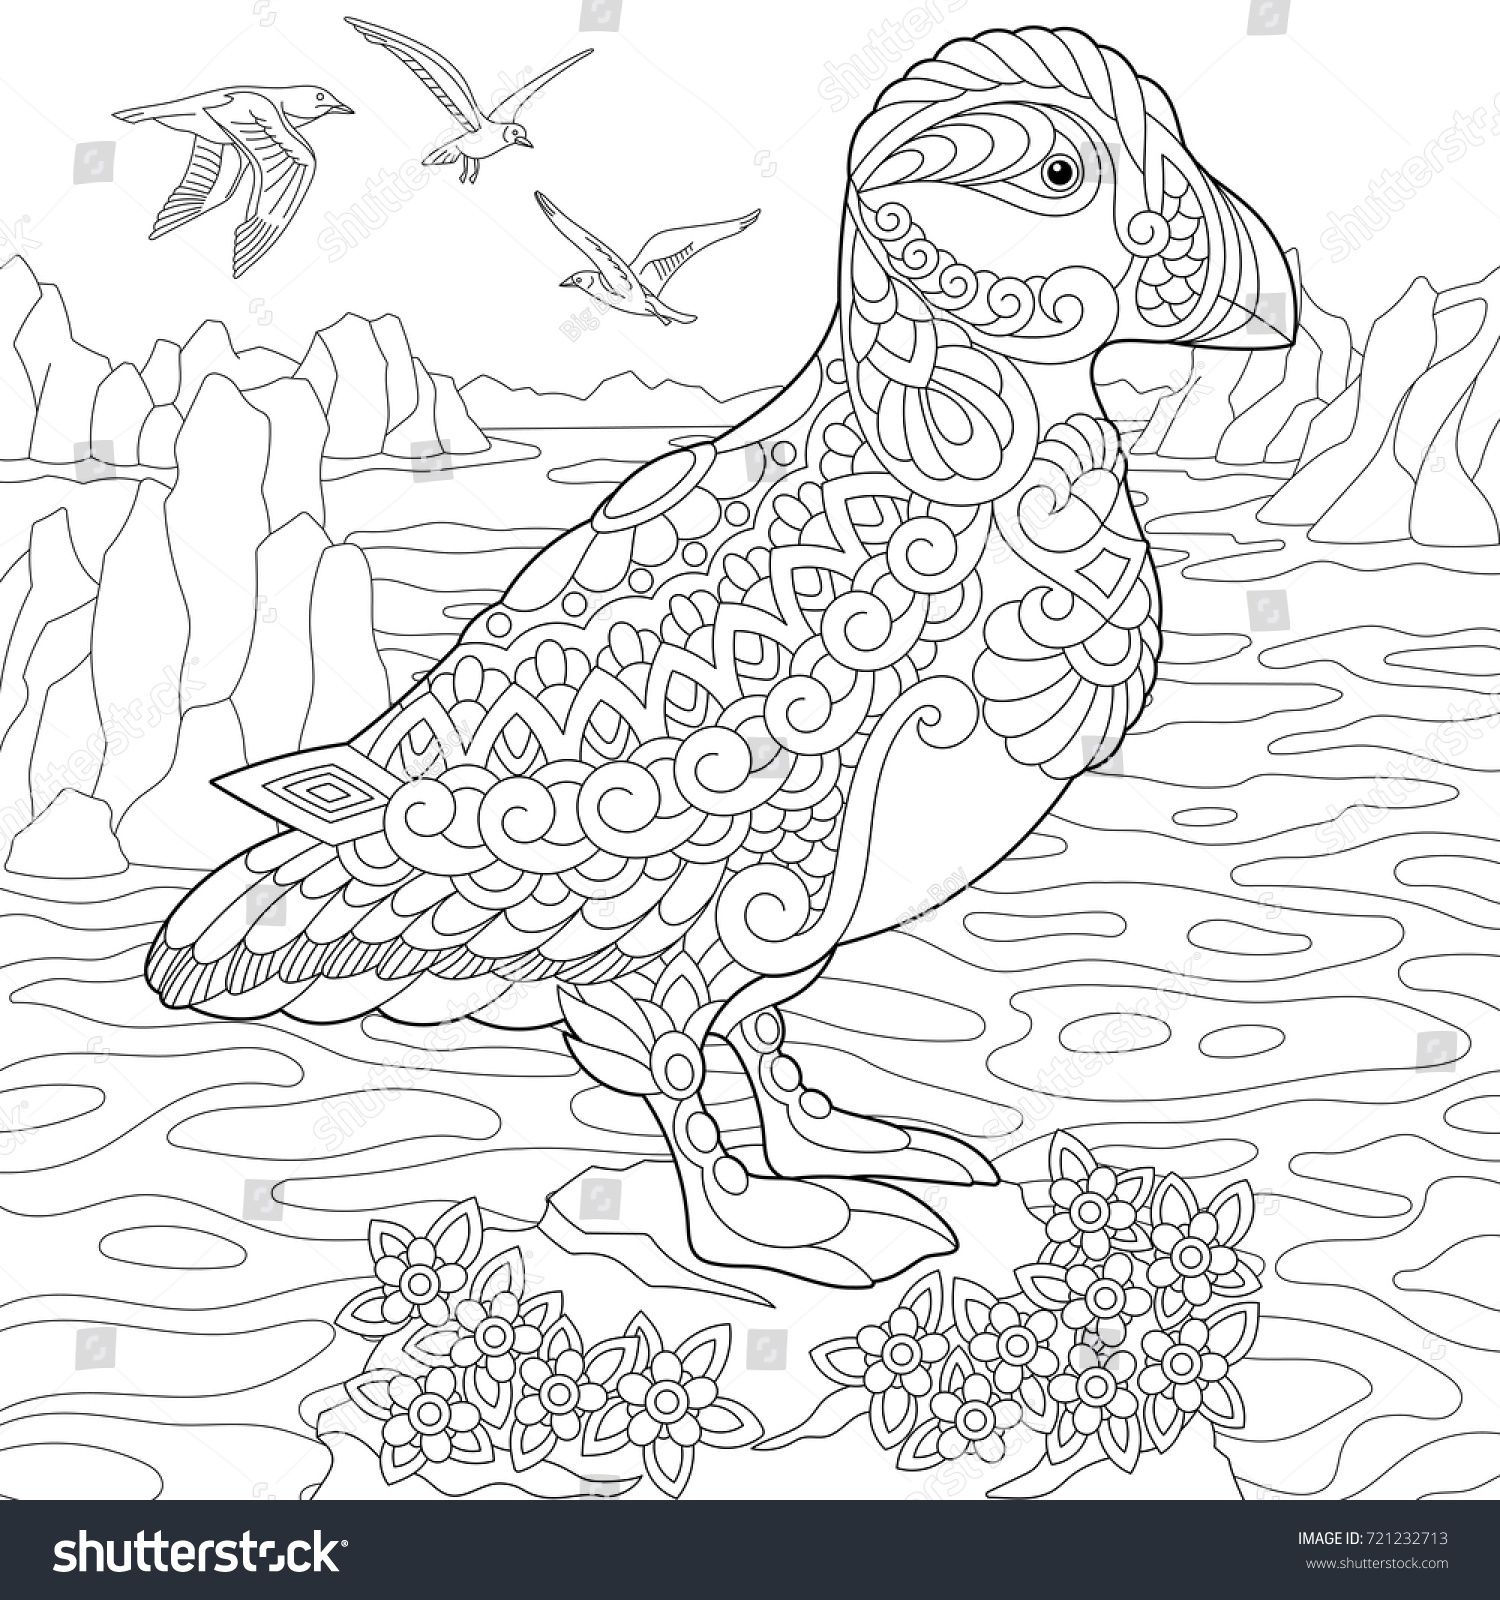 Coloring page of puffin, seabird of northern and Arctic waters ...